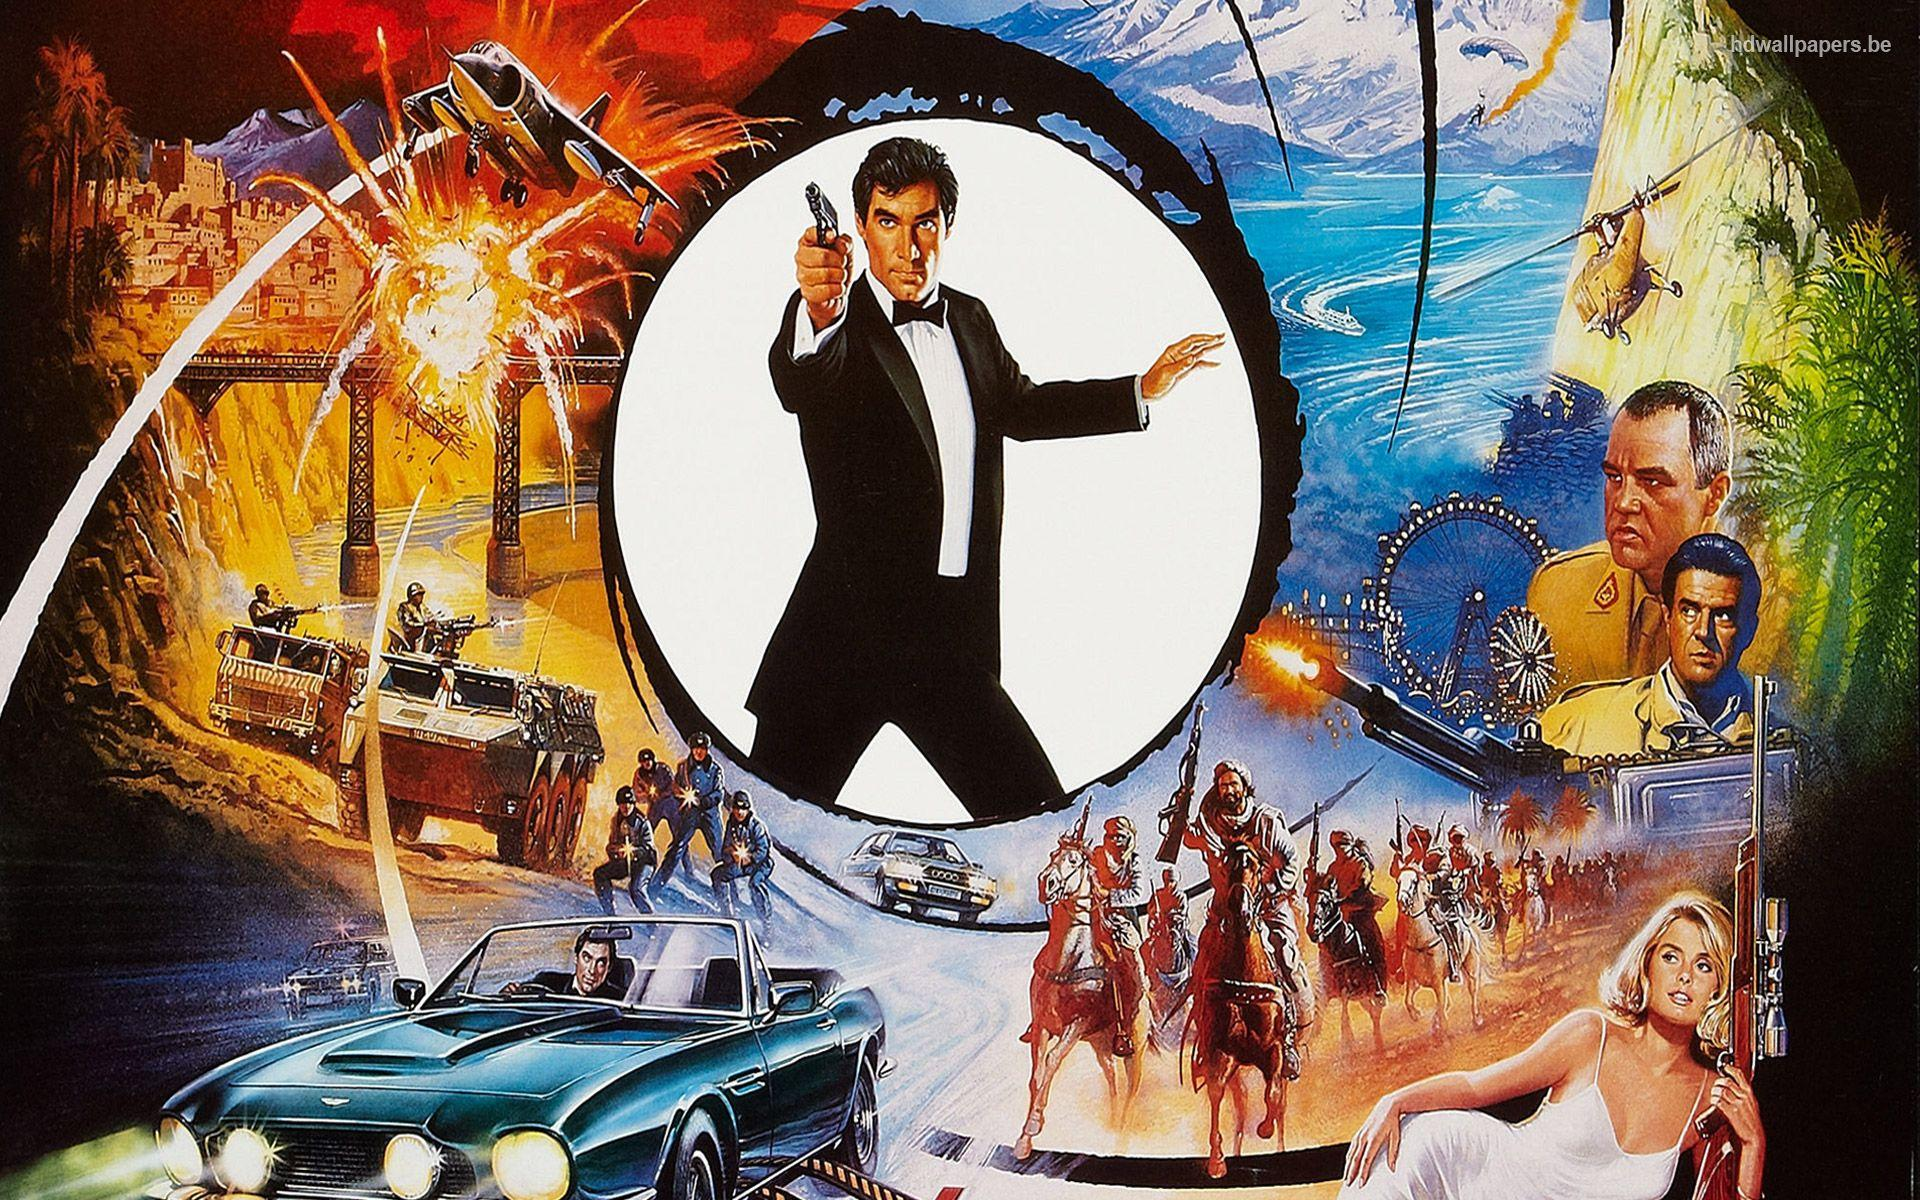 James Bond Wallpapers, Vintage, Poster, HD Wallpapers